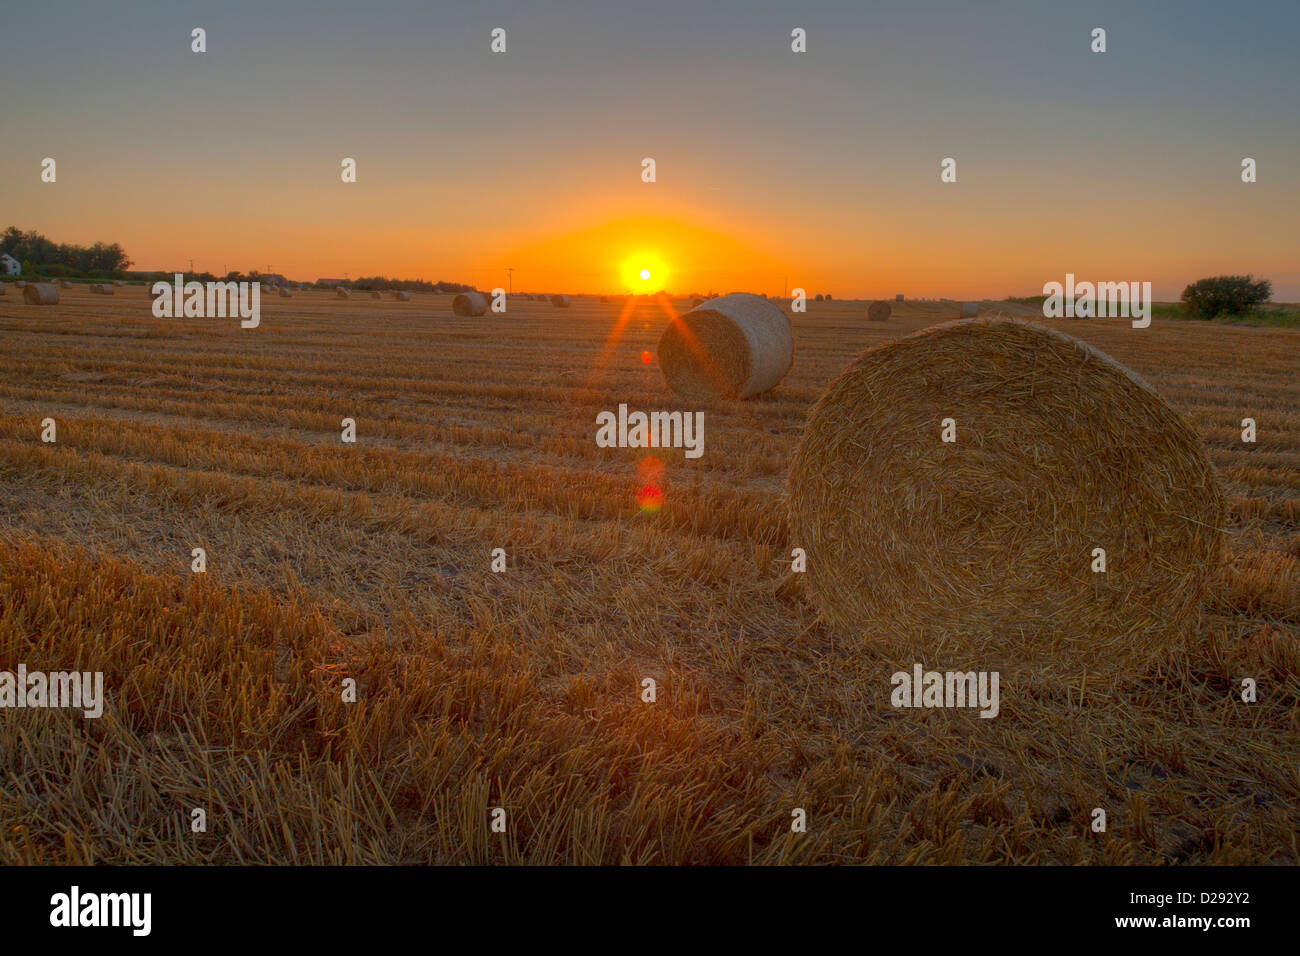 Fenland landscape at sunset. Large round straw bales in a recently harvested wheat field, Cambridgeshire, England. - Stock Image